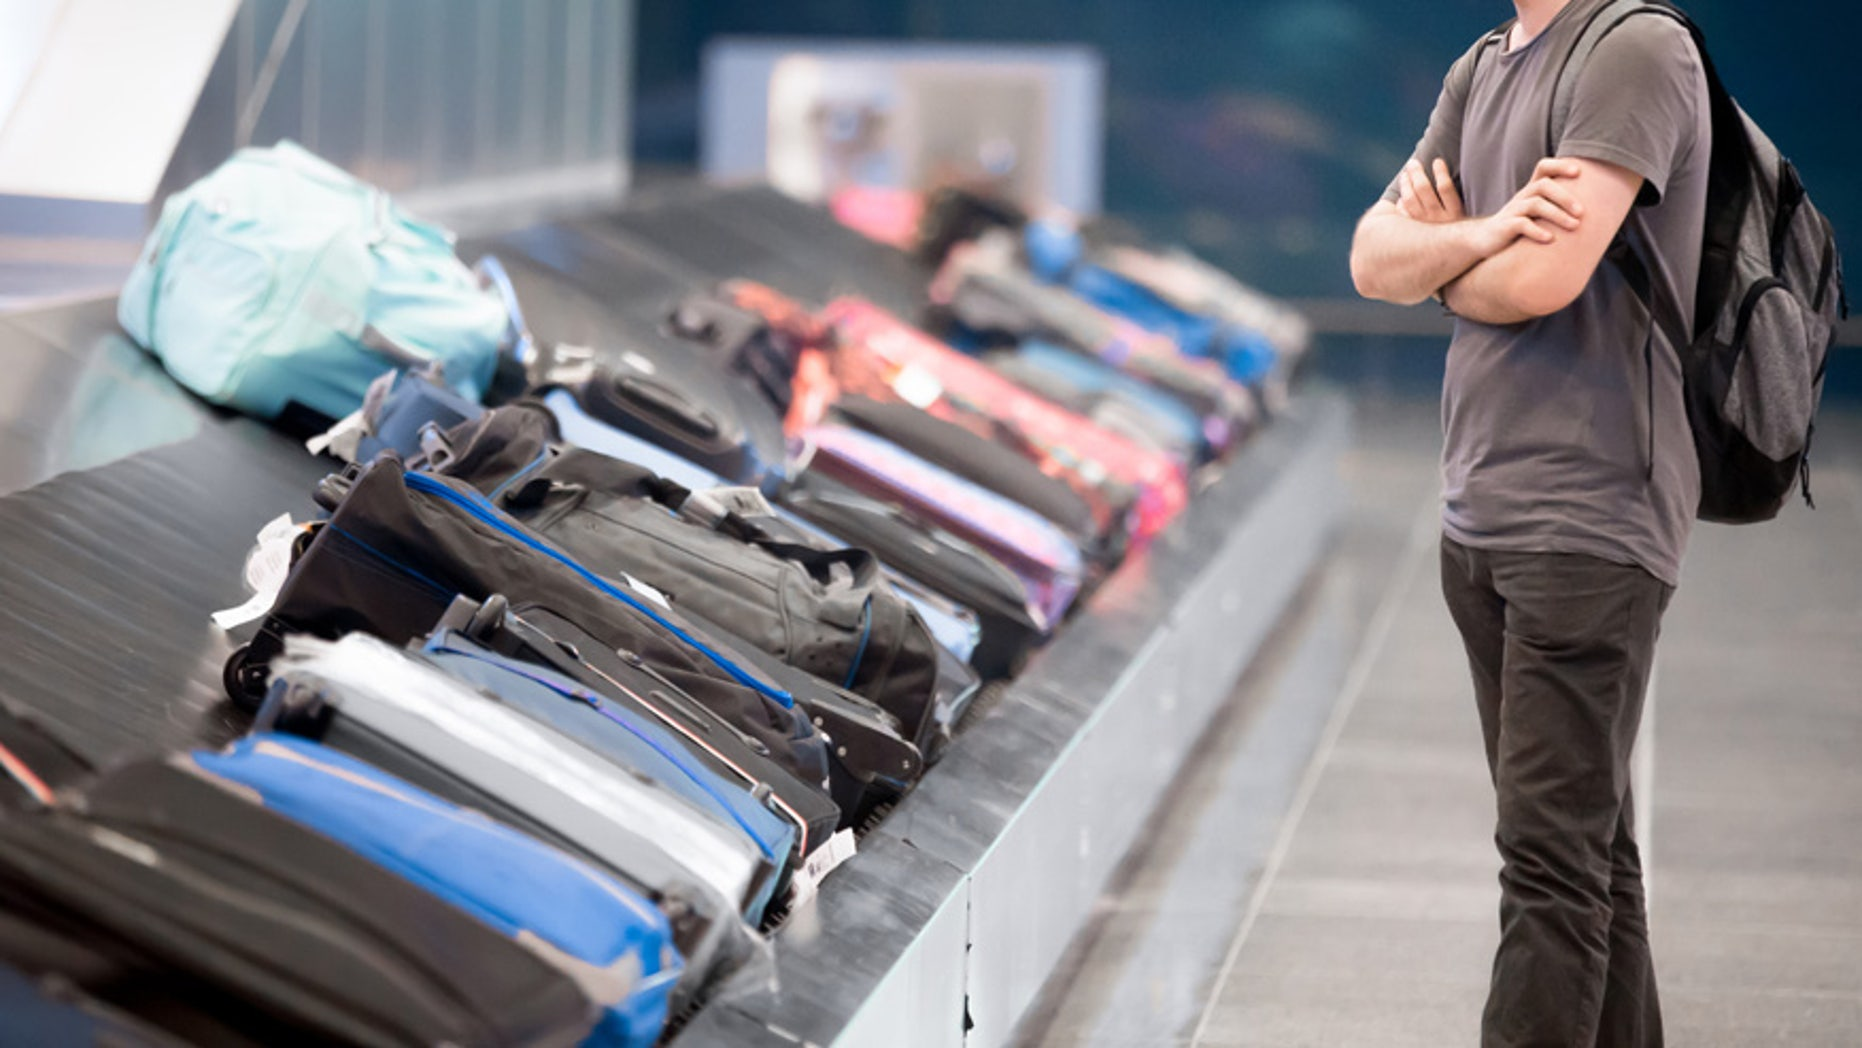 In its annual report, SITA says airlines are losing less and less luggage.